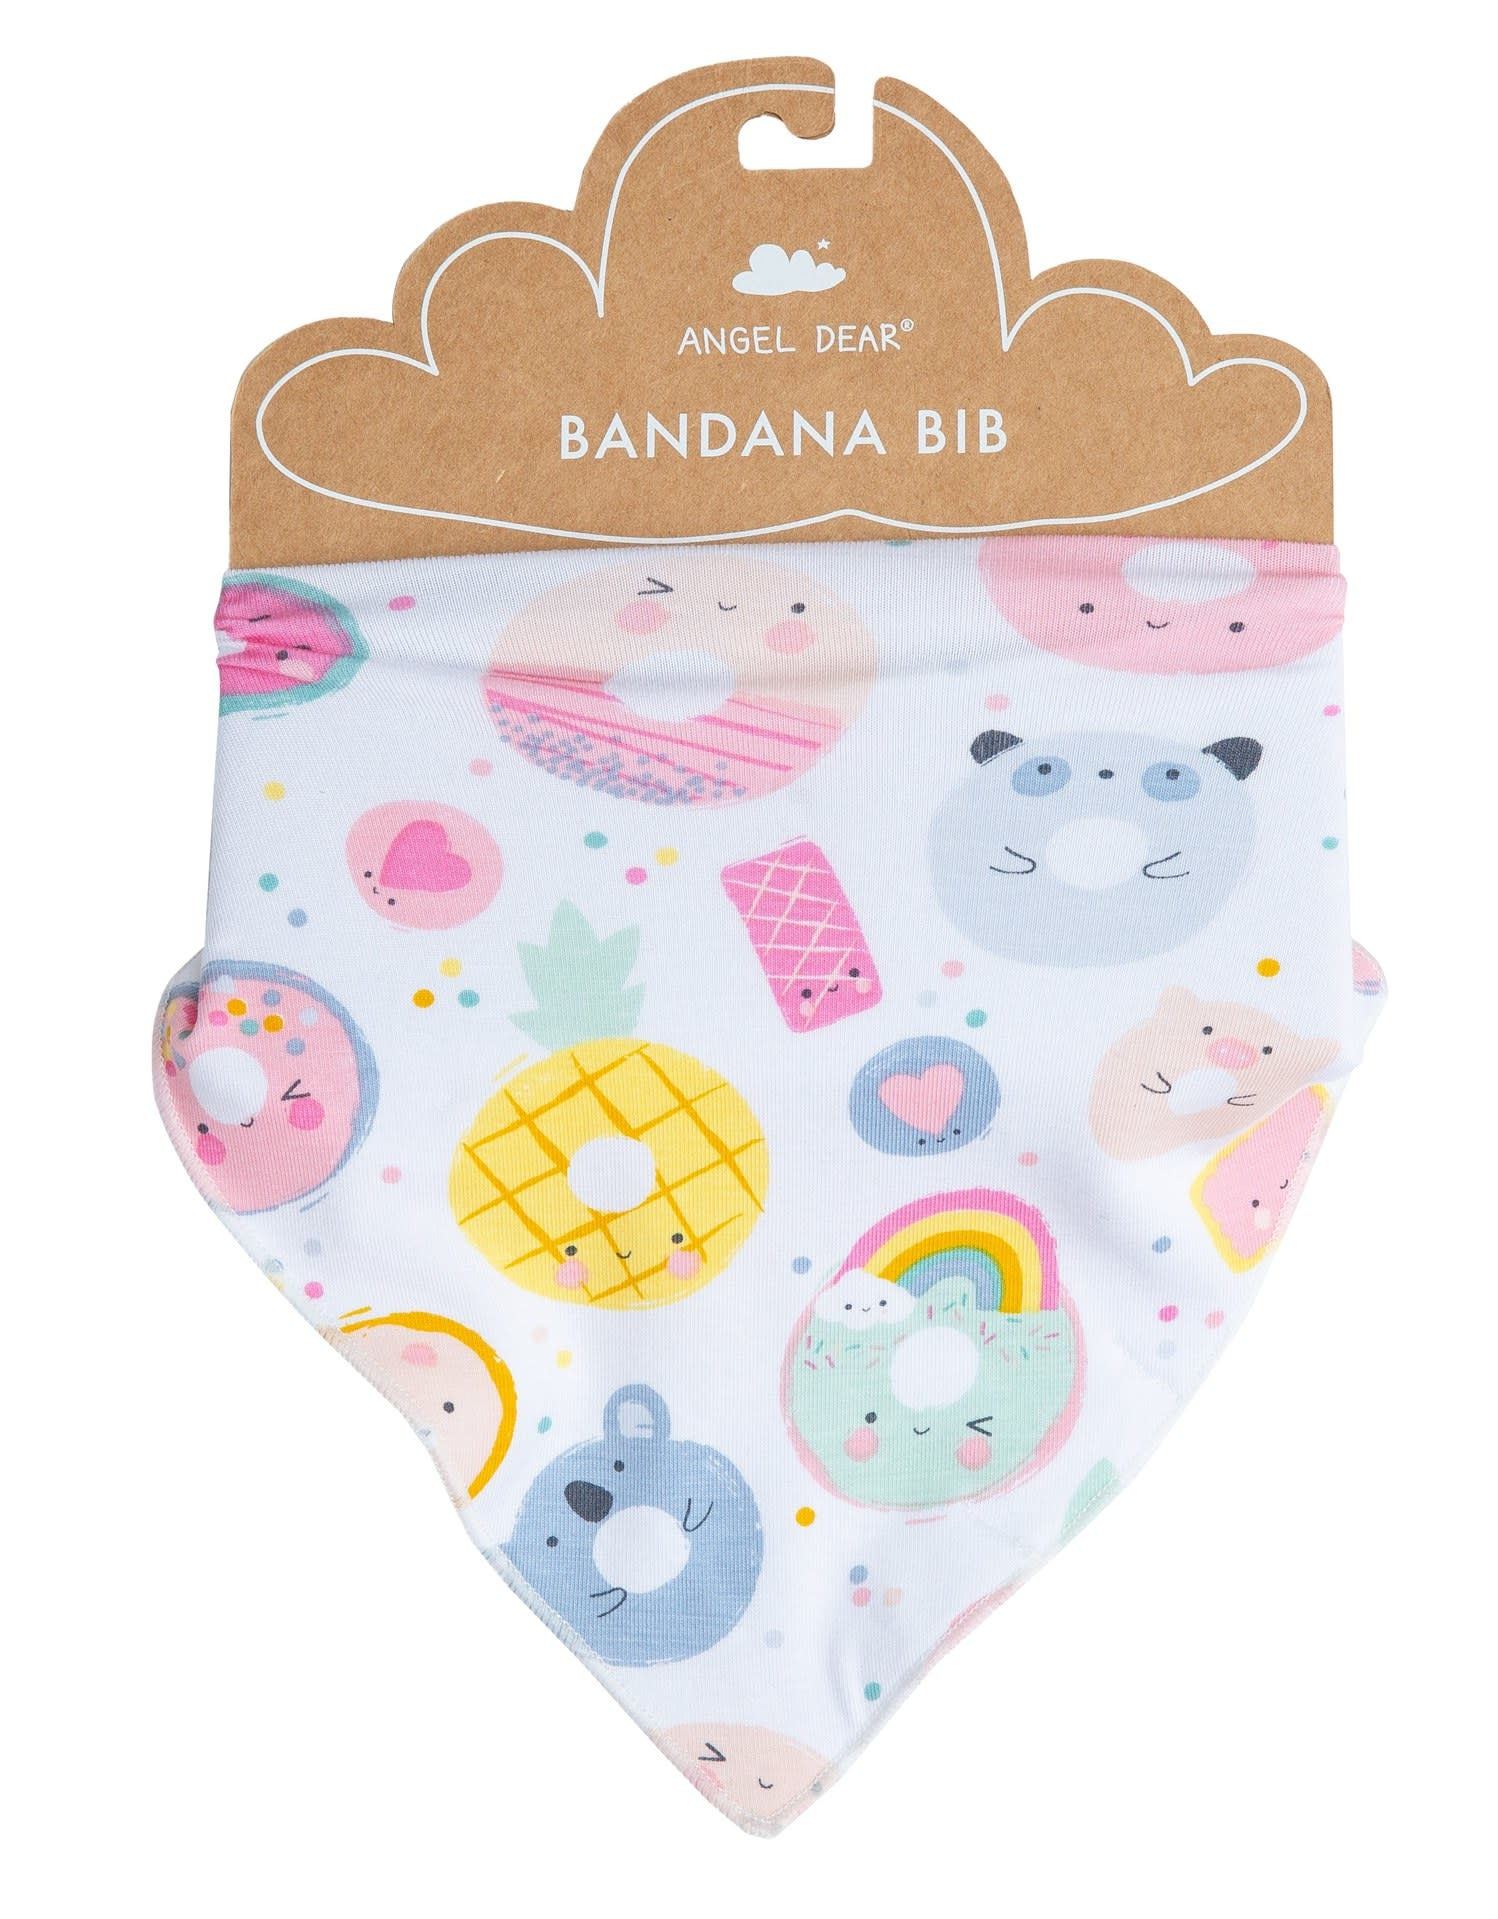 Angel Dear Bandana Bib, Donut Smiles